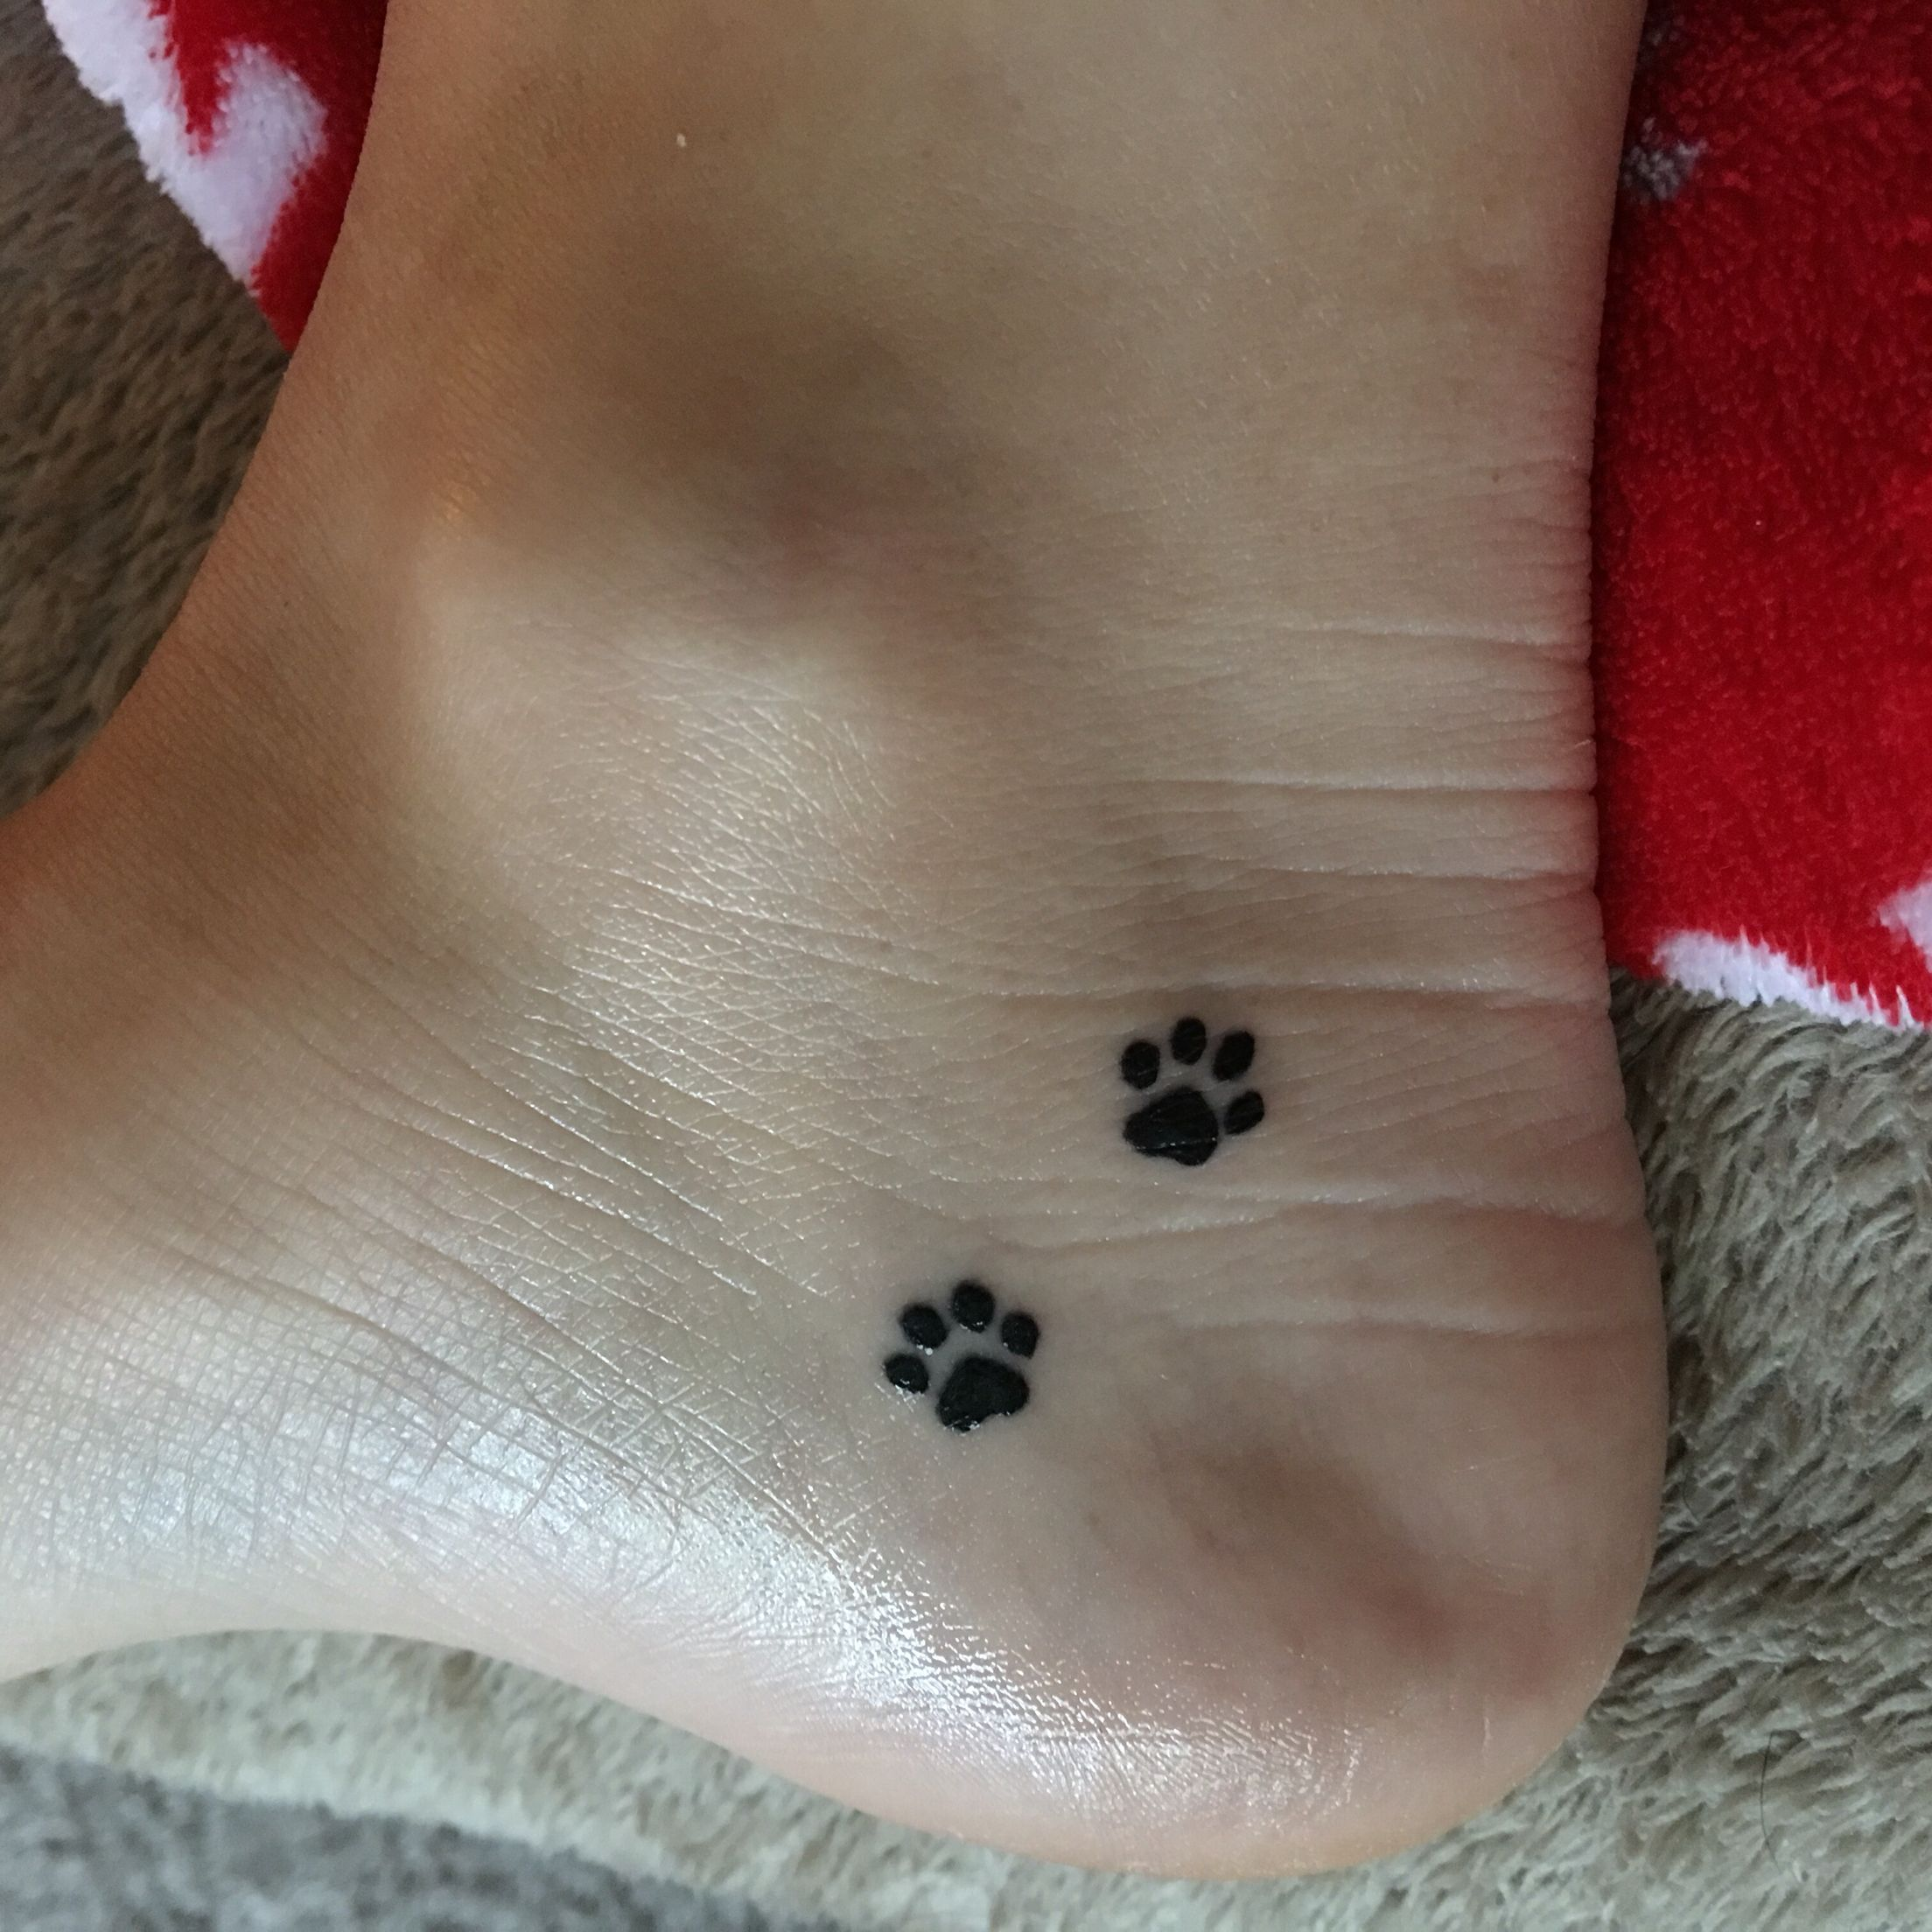 aede7fce19663 Just got this tattoo. Small paw prints on the inside my foot I LOVE IT!